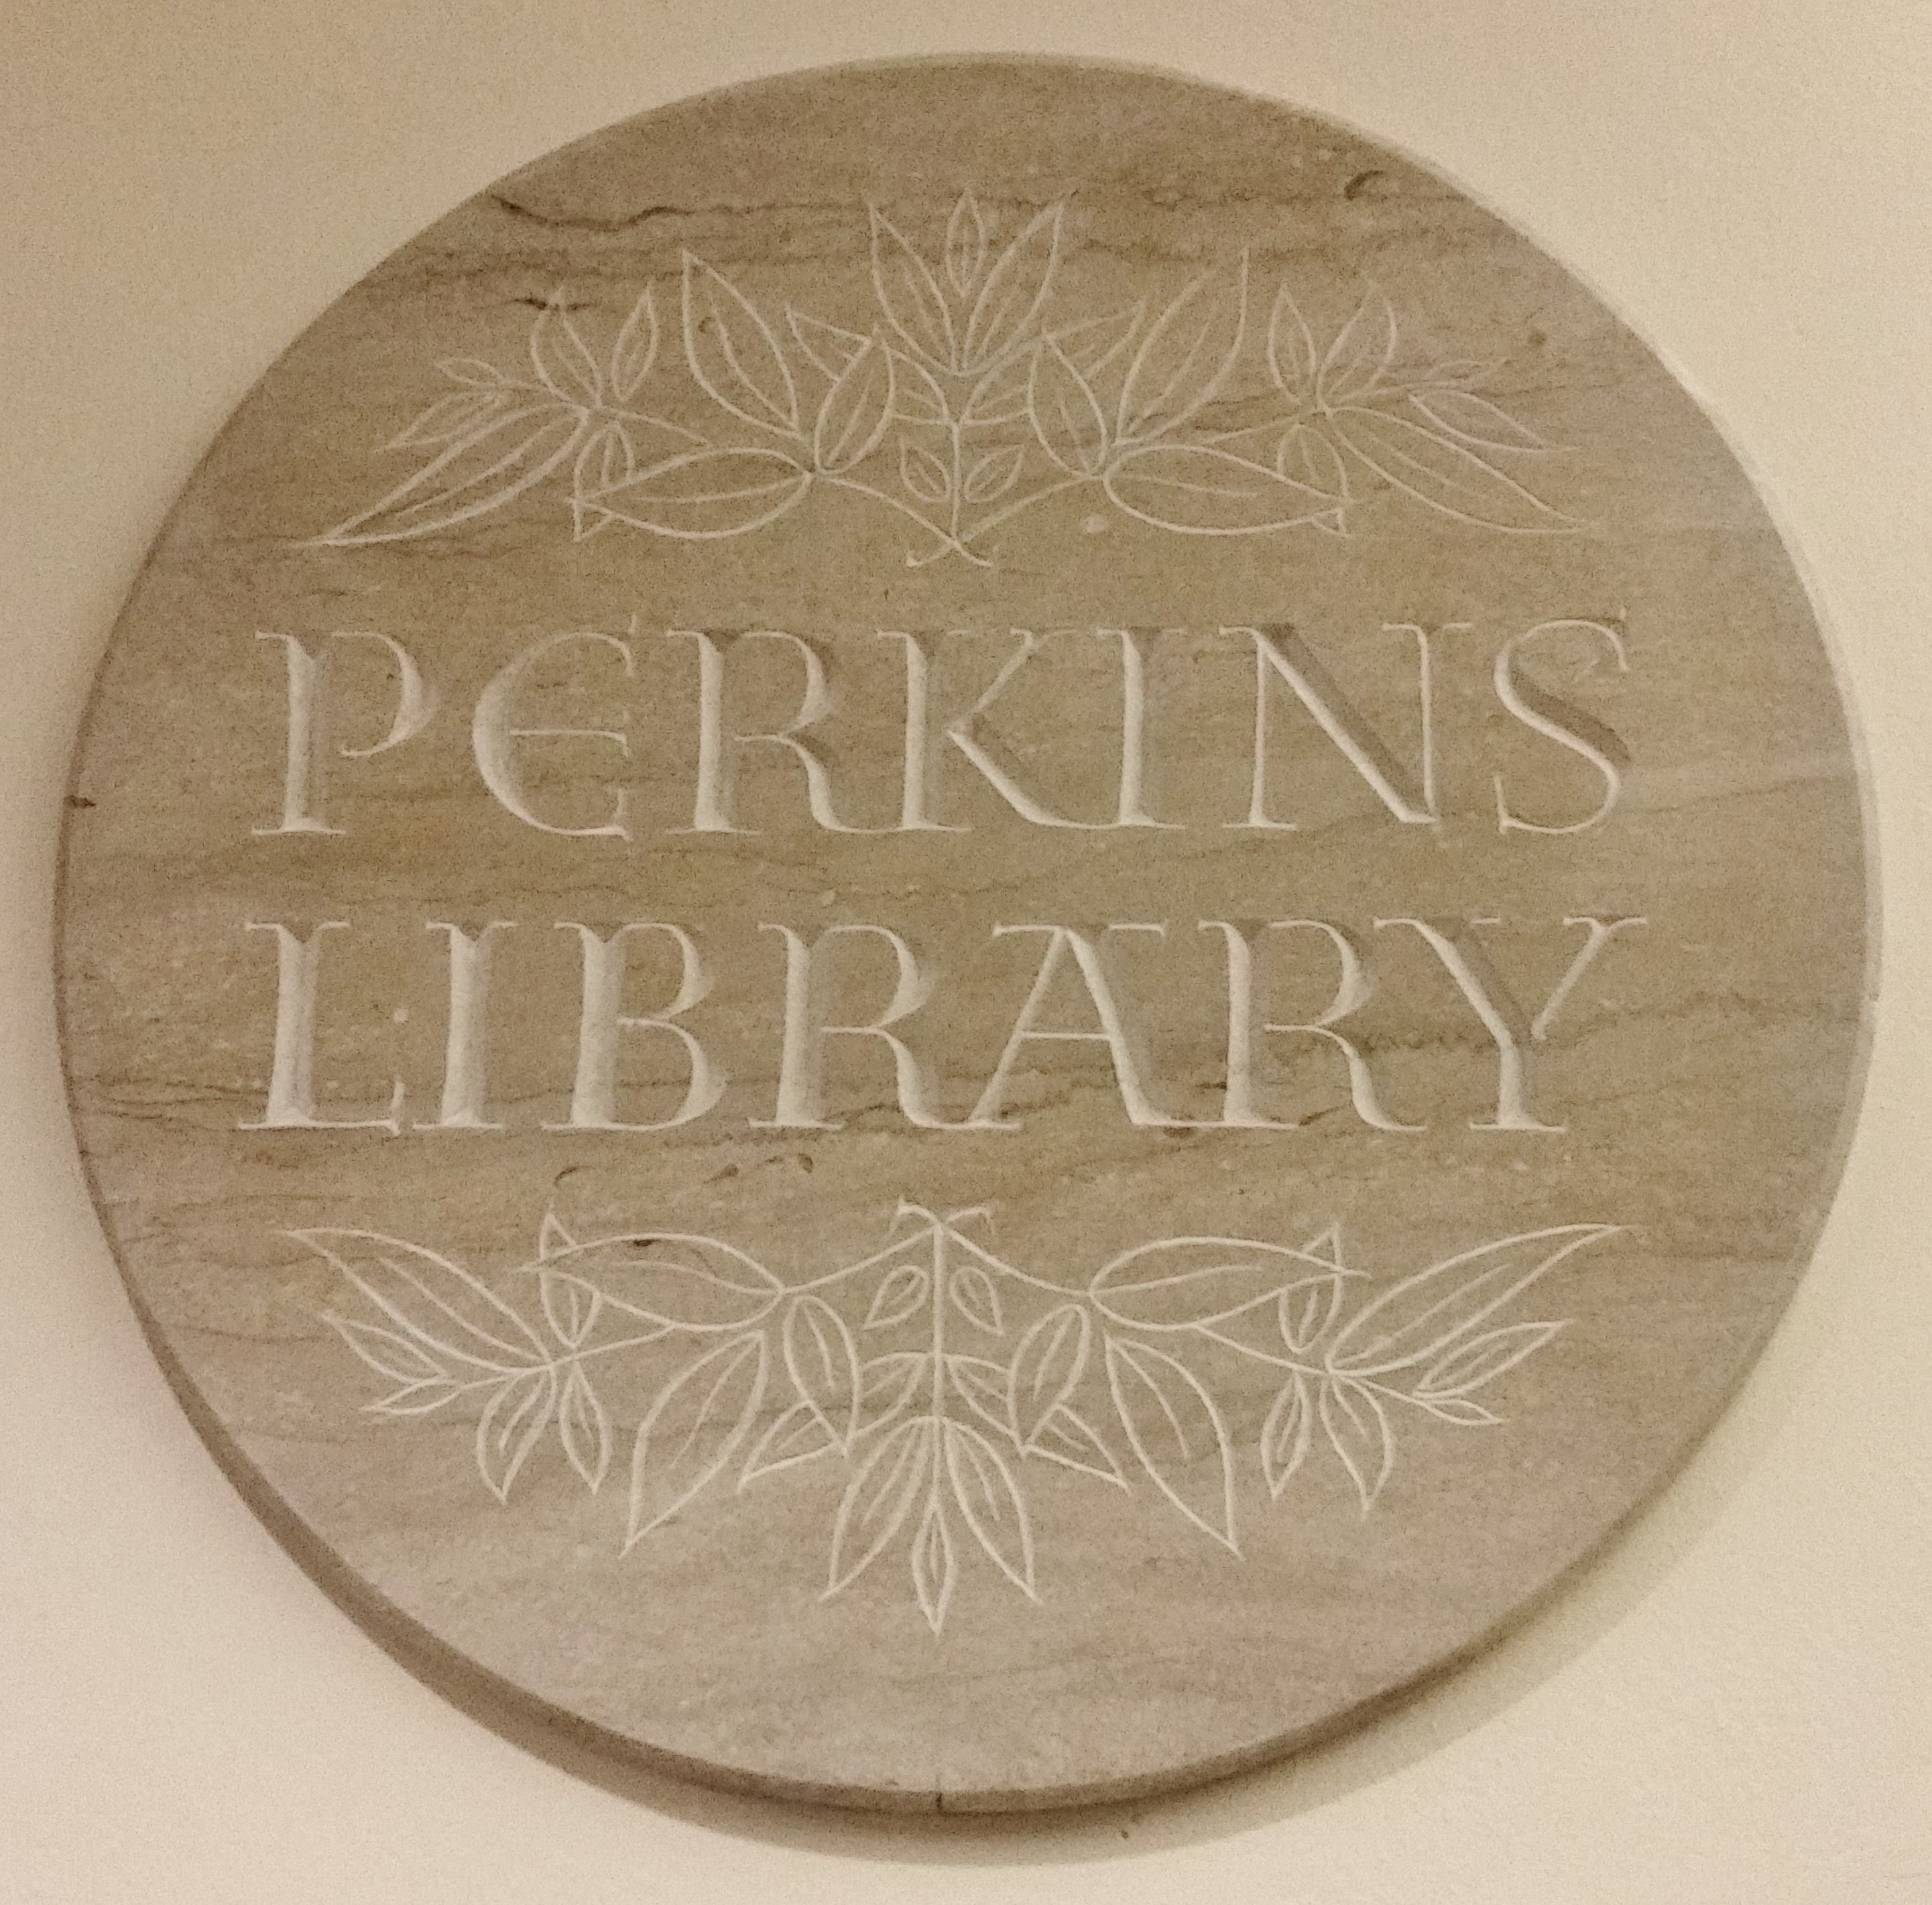 Wall sign for Perkins Library